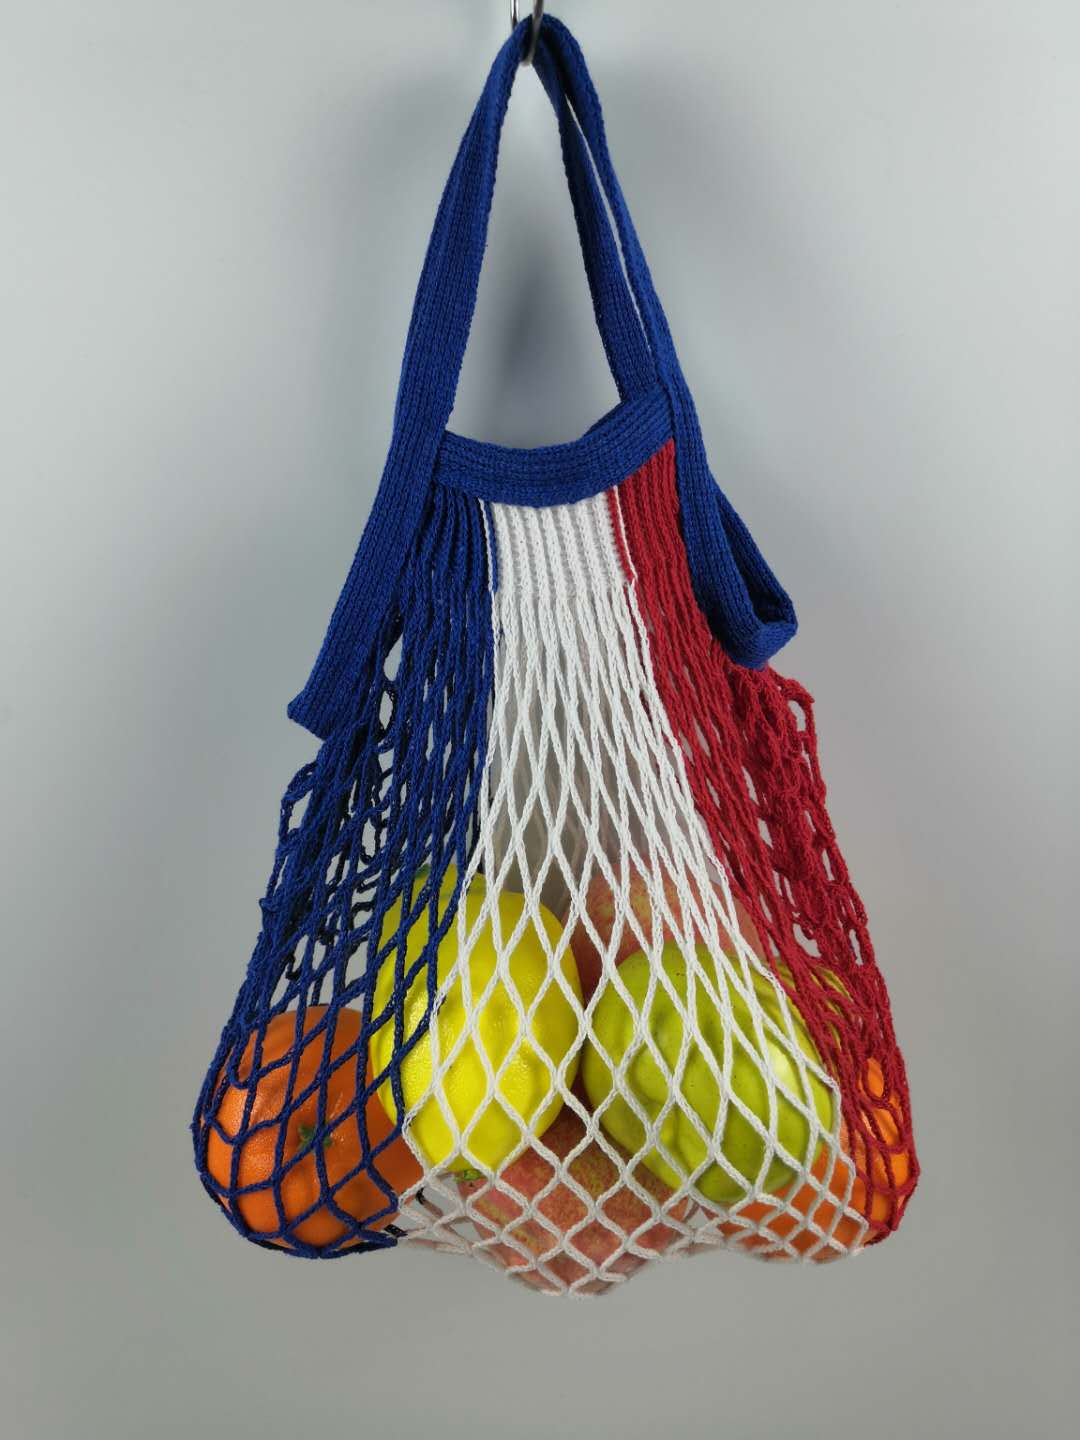 new style net bag